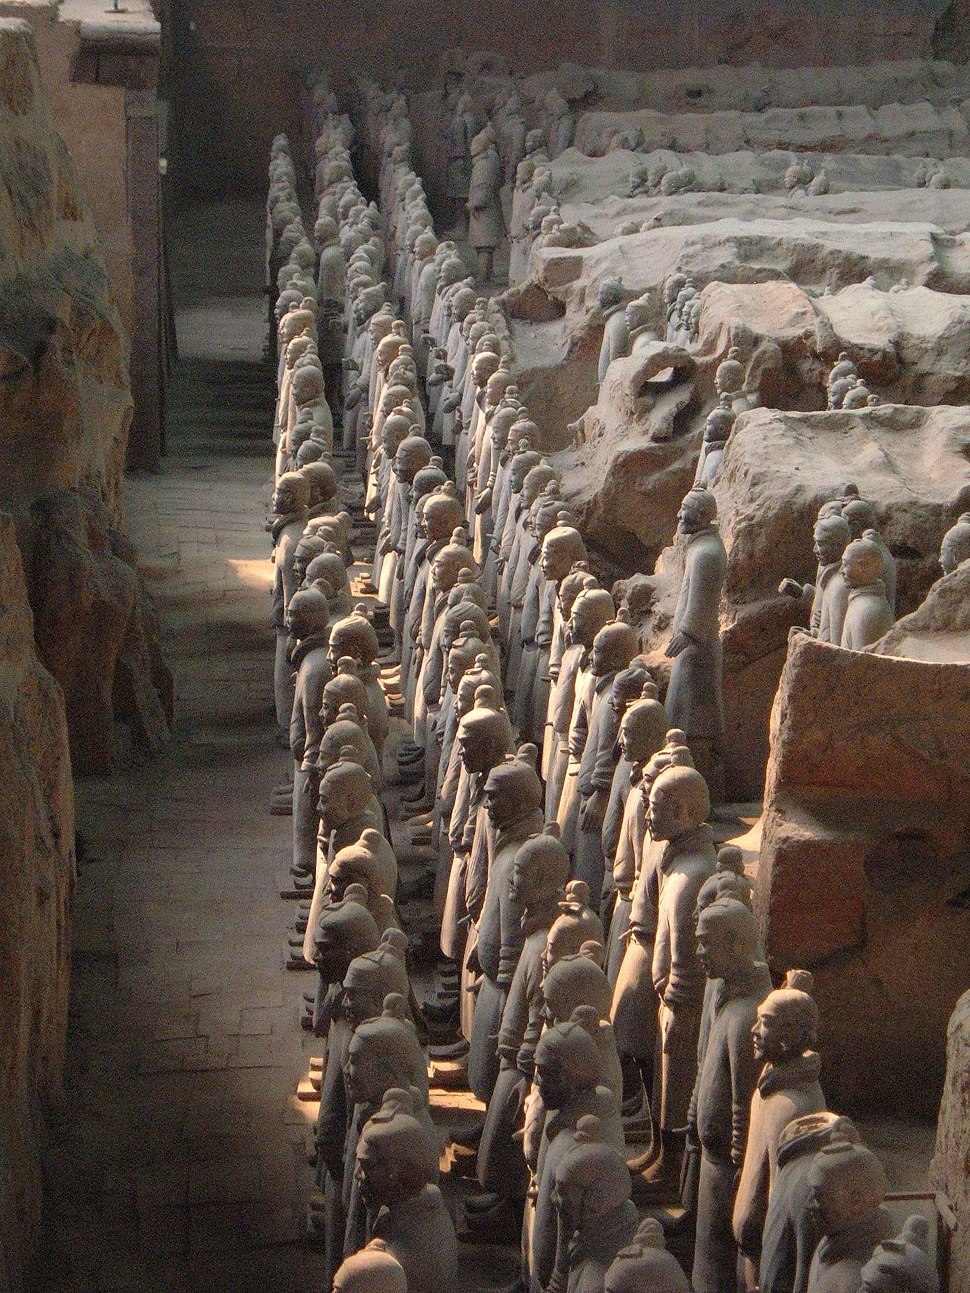 Terracotta Army Pit 1 front rank